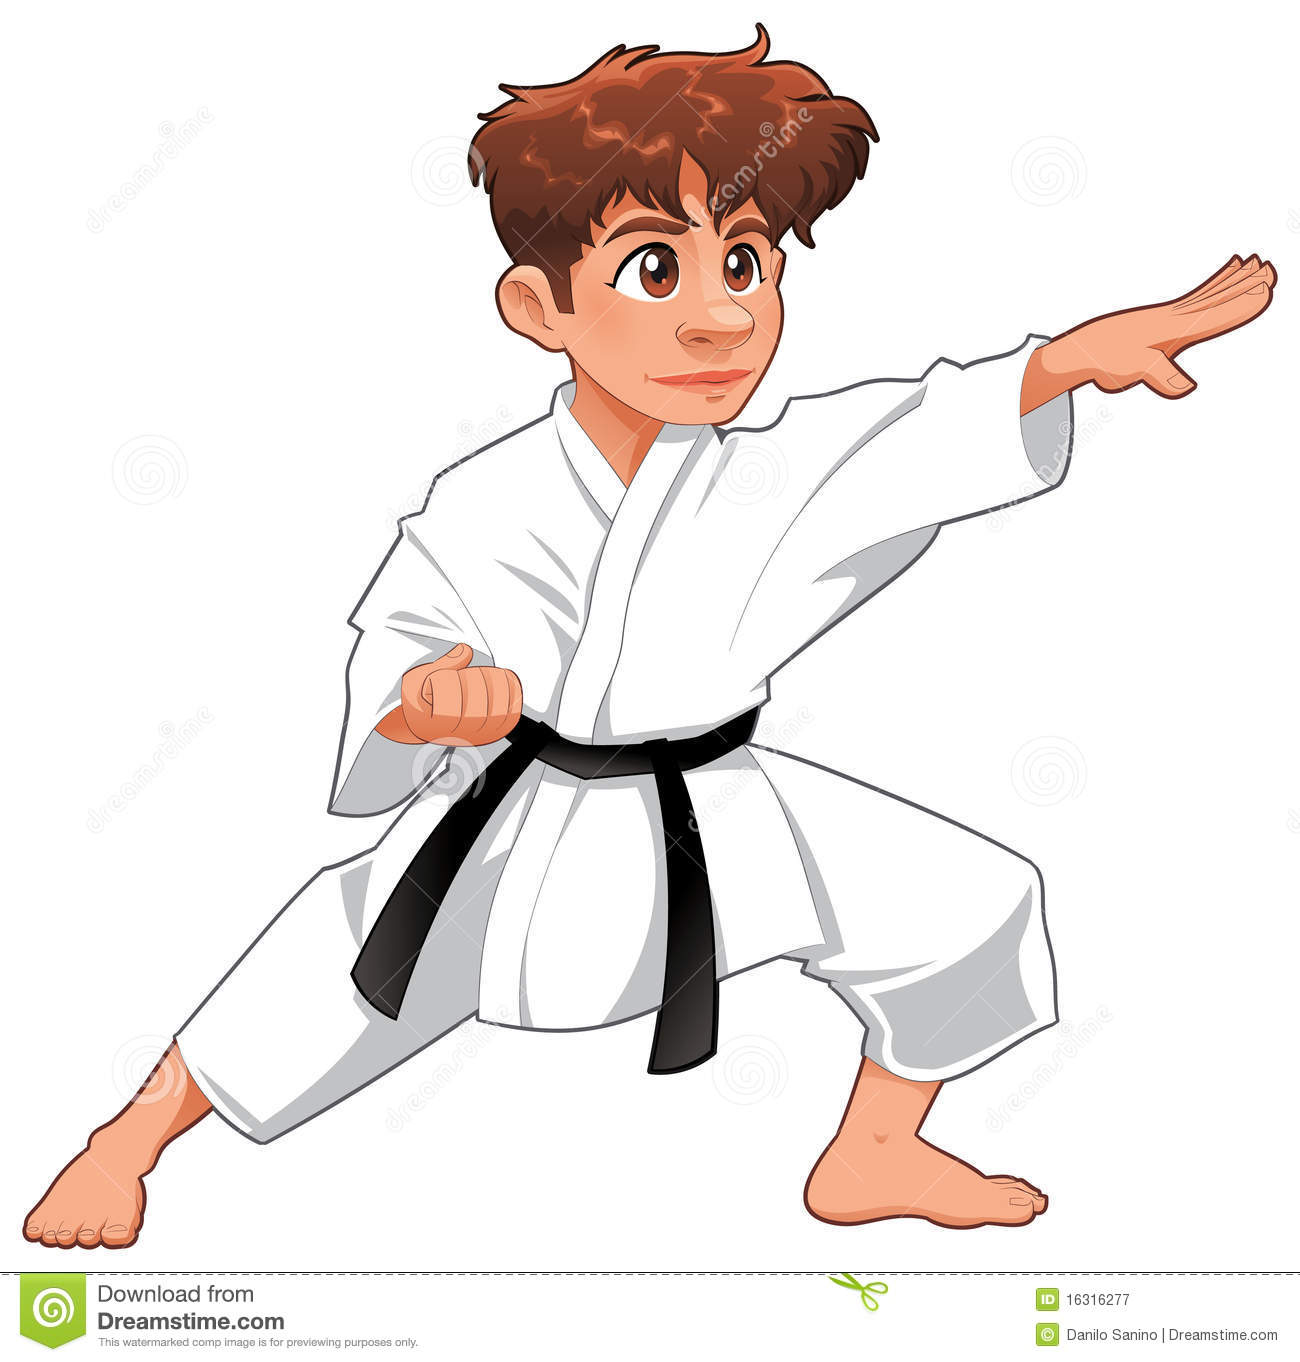 Baby Karate Player. Royalty Free Stock Photography - Image: 16316277